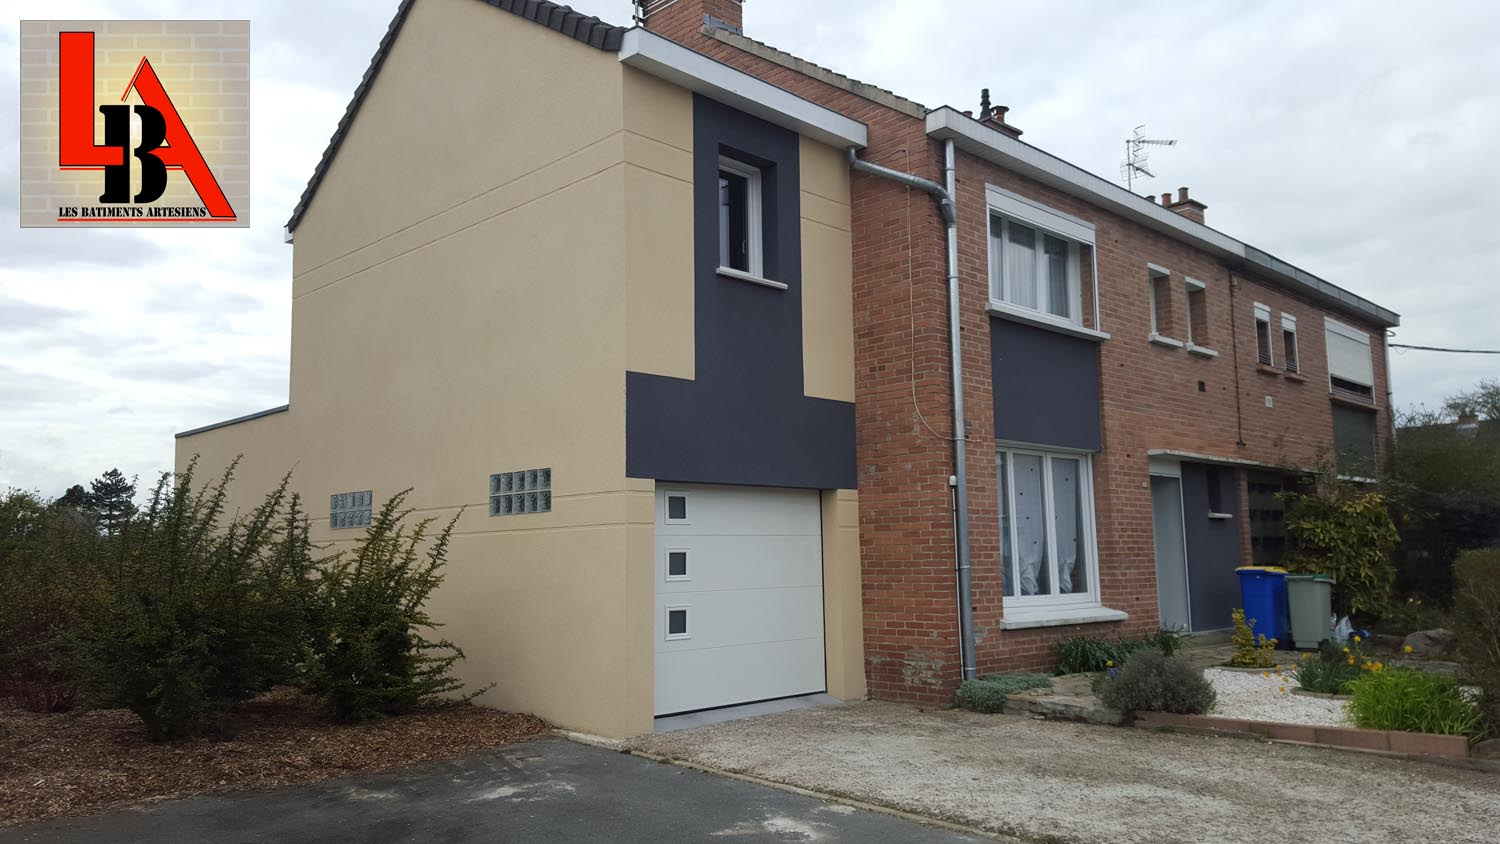 Les b timents art siens extensions maisons neuves for Travaux extension maison